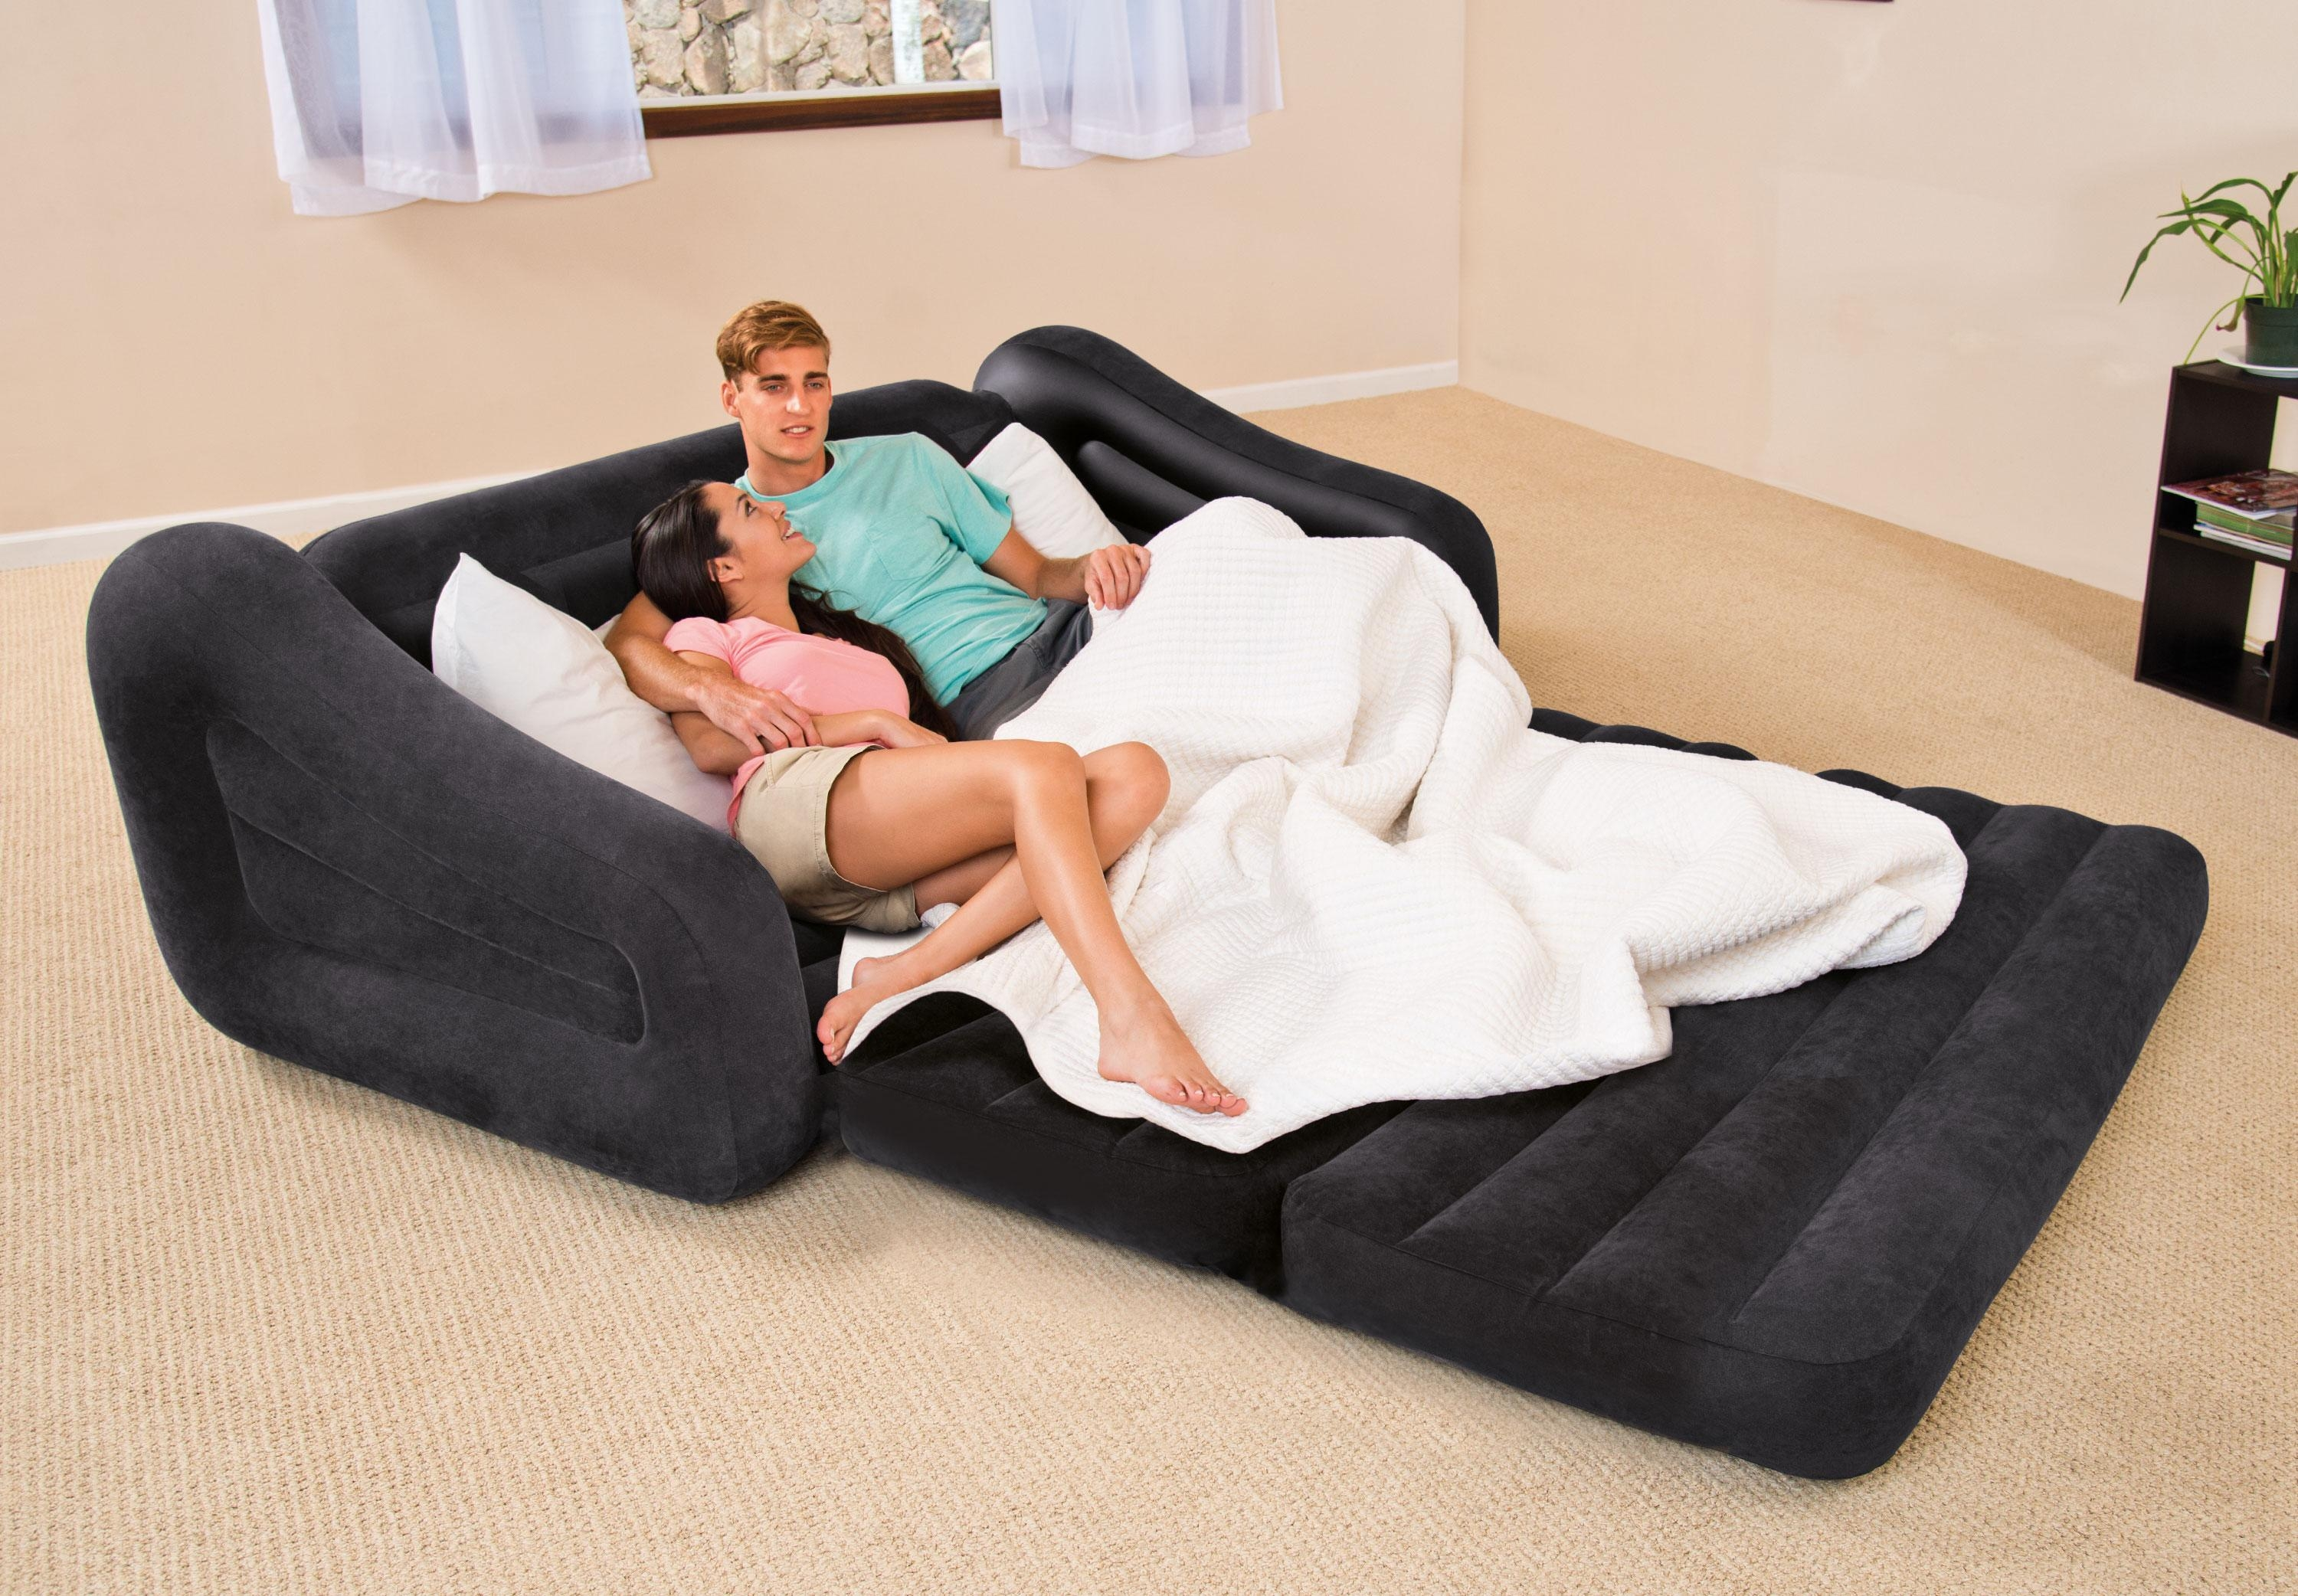 Intex Inflatable Pull Out Sofa Queen Bed Sleeper 68566Ep + 66619E Throughout Intex Inflatable Pull Out Sofas (Image 8 of 20)